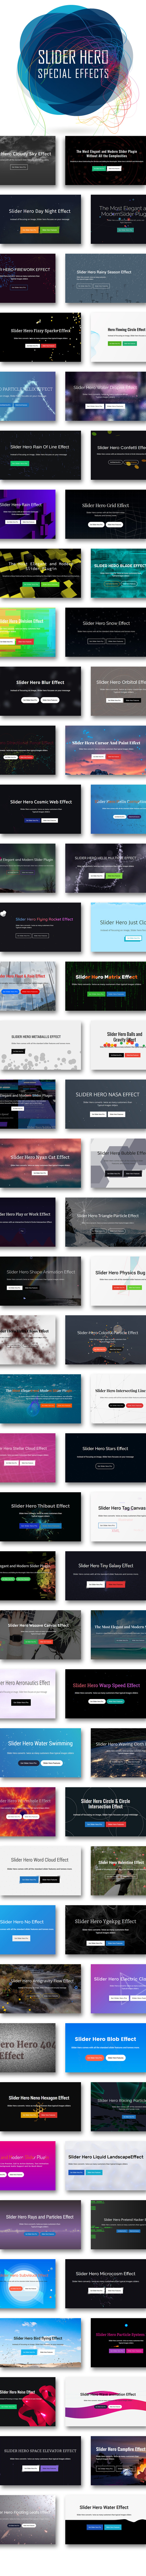 Slider Hero with Animation Effects, Video Background, Video Slider & Intro Maker - 9